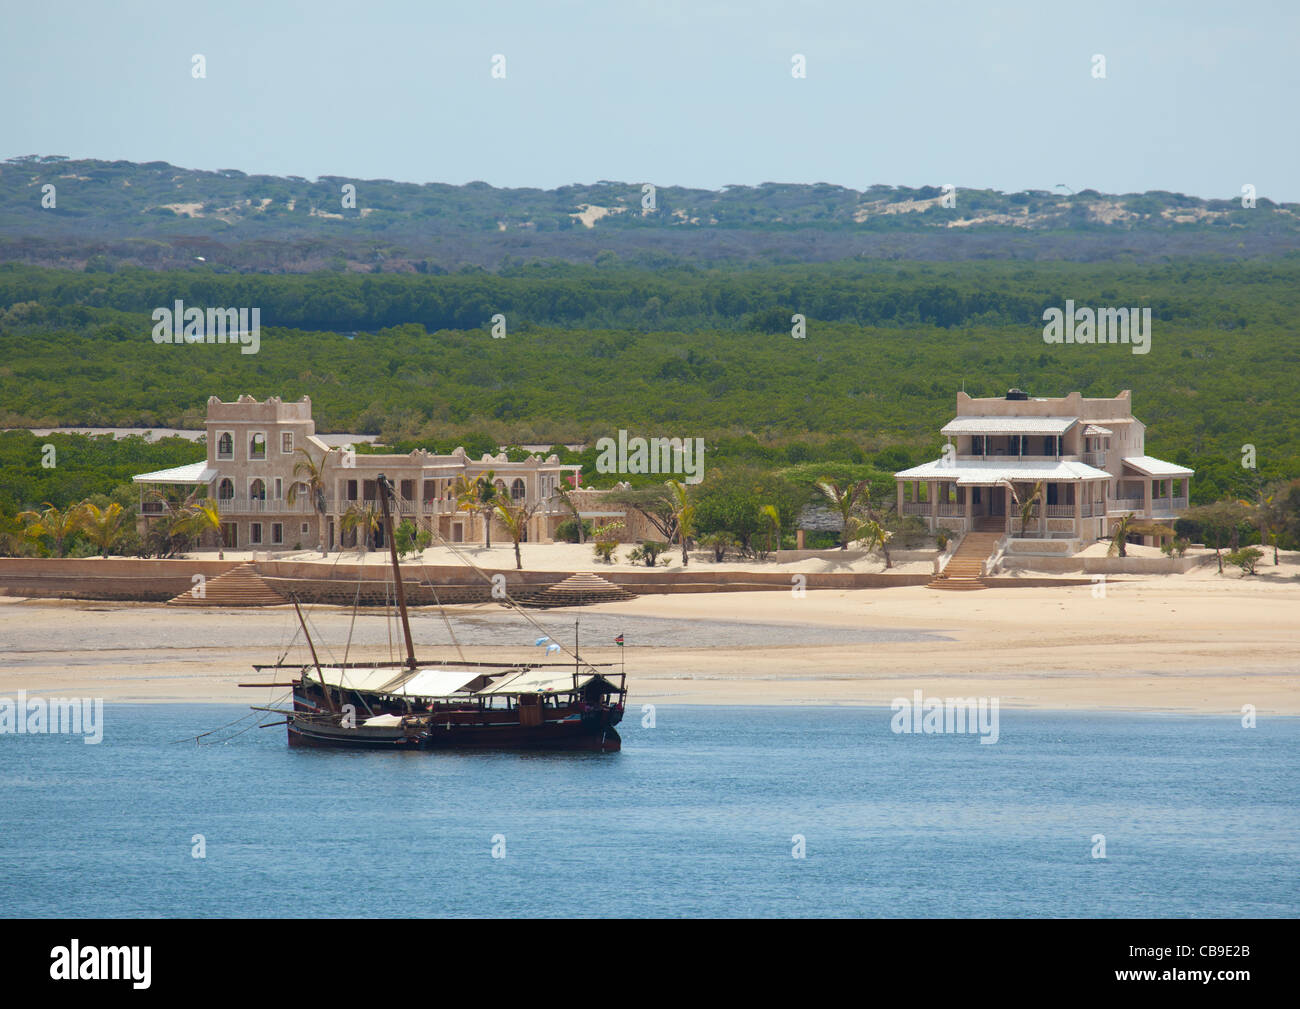 Two dhows seem to be sleeping in the quiet bay of Millionnaire-estates invaded lamu island coast kenya Stock Photo